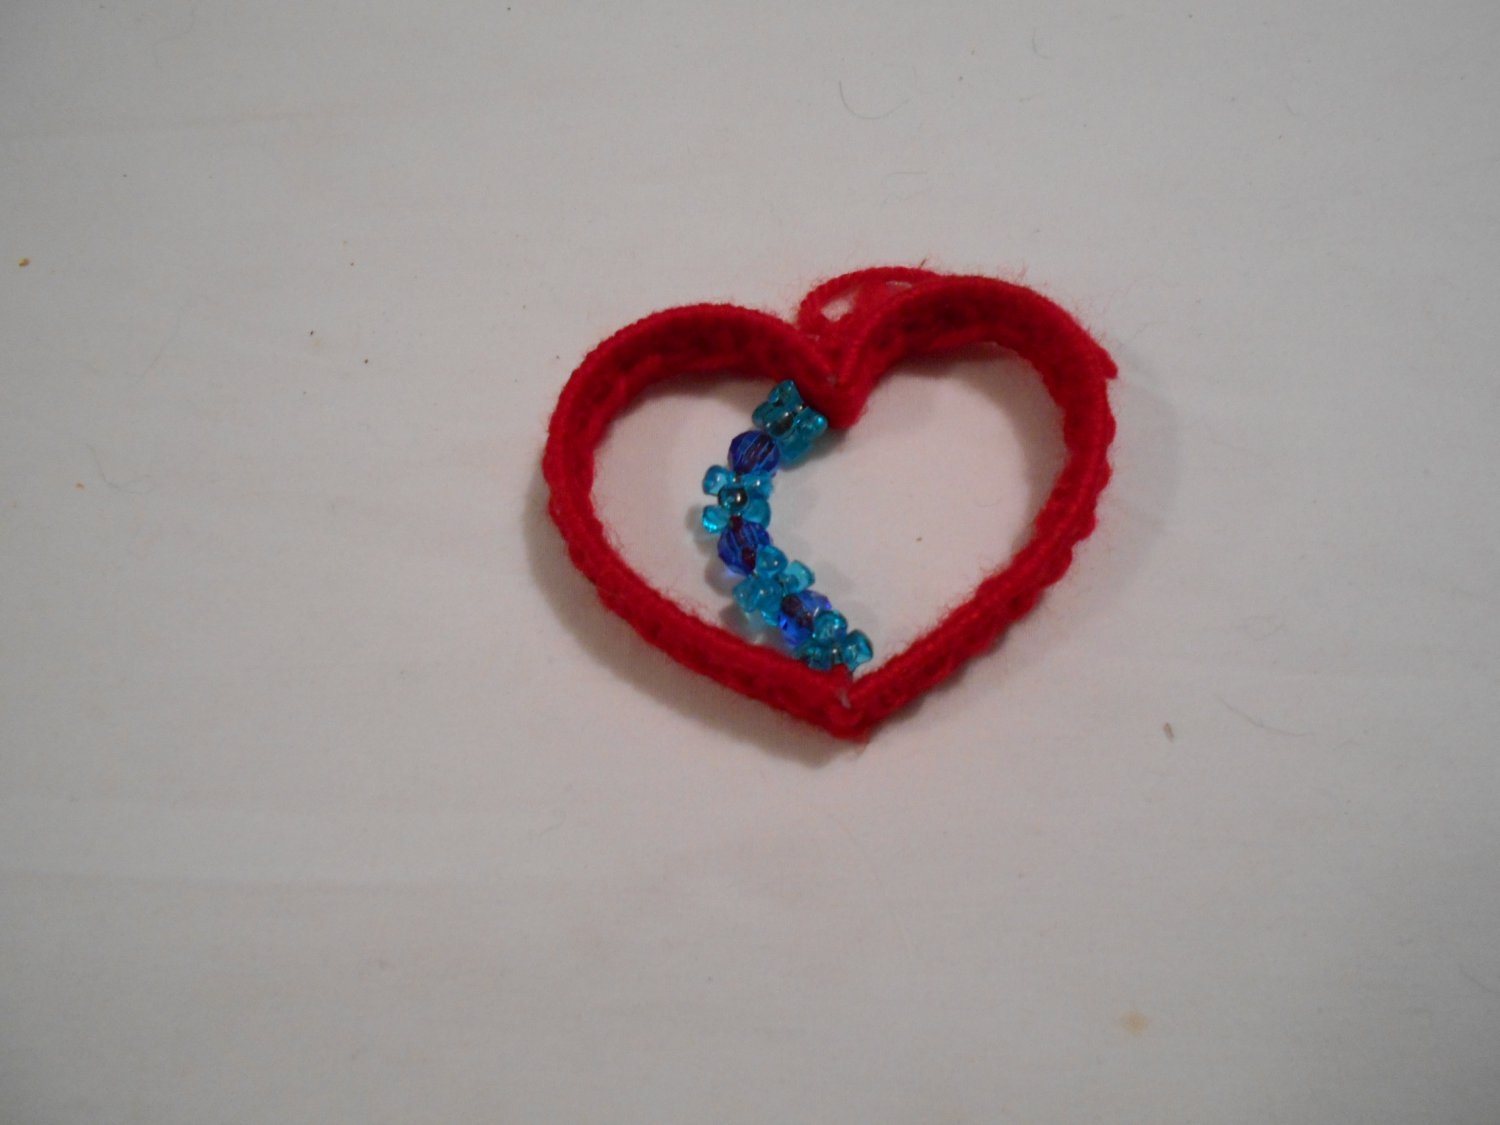 Handcrafted Plastic Red Heart with Blue Beads (BB59) (PL) Crafts, Handmade